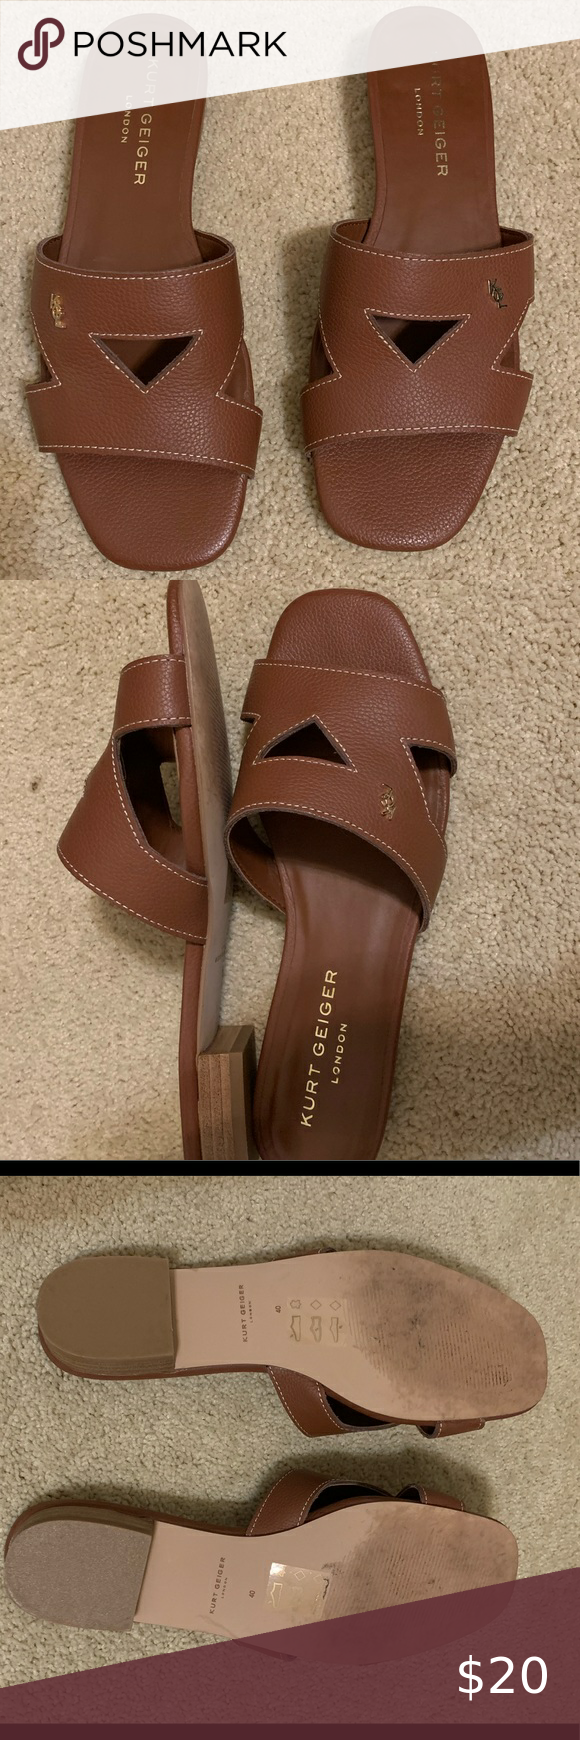 Kurt Geiger Sandals Only worn once. Really similar to the Hermès sandals that all the influencers wear. Kurt Geiger Shoes Sandals